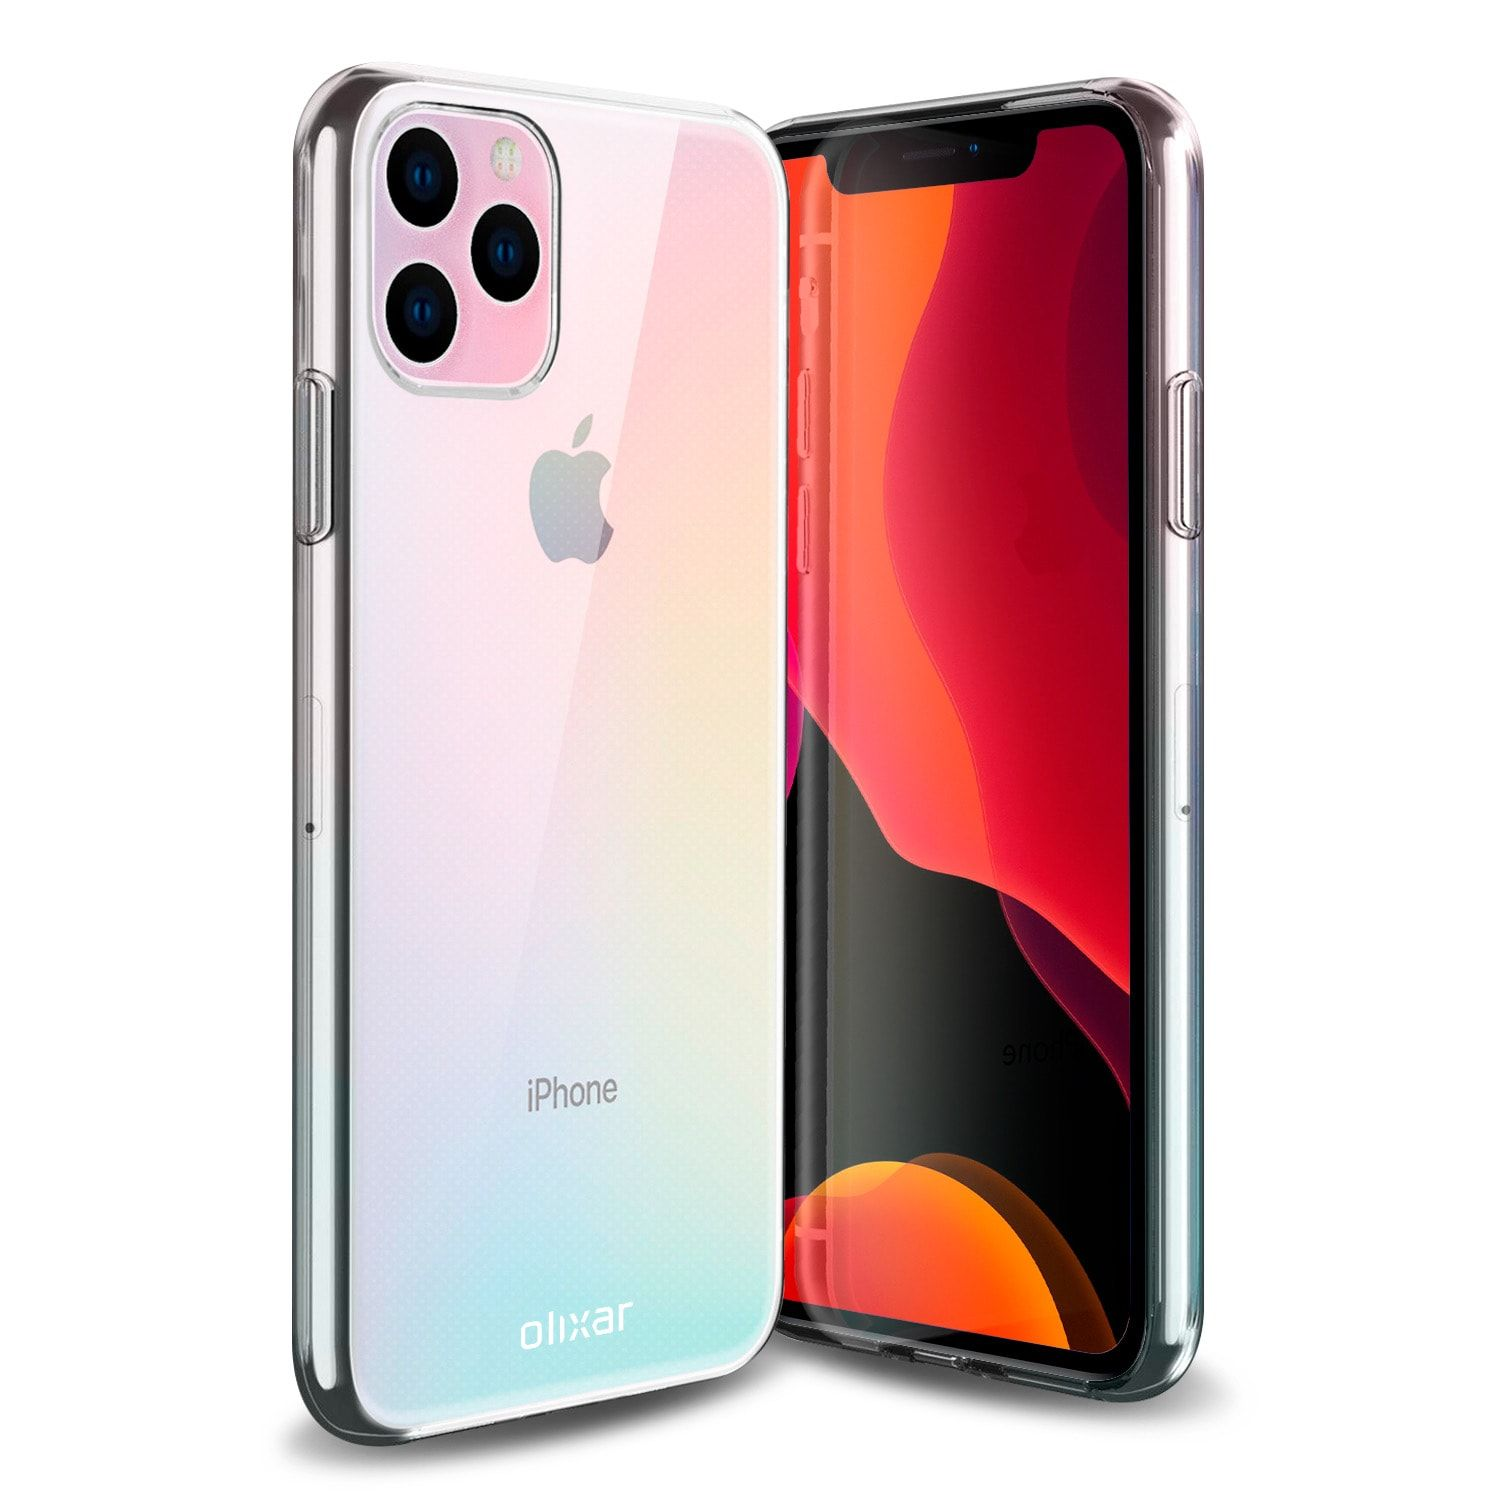 Gorgeous New Iphone 11 Color Options Spilled By Case Maker